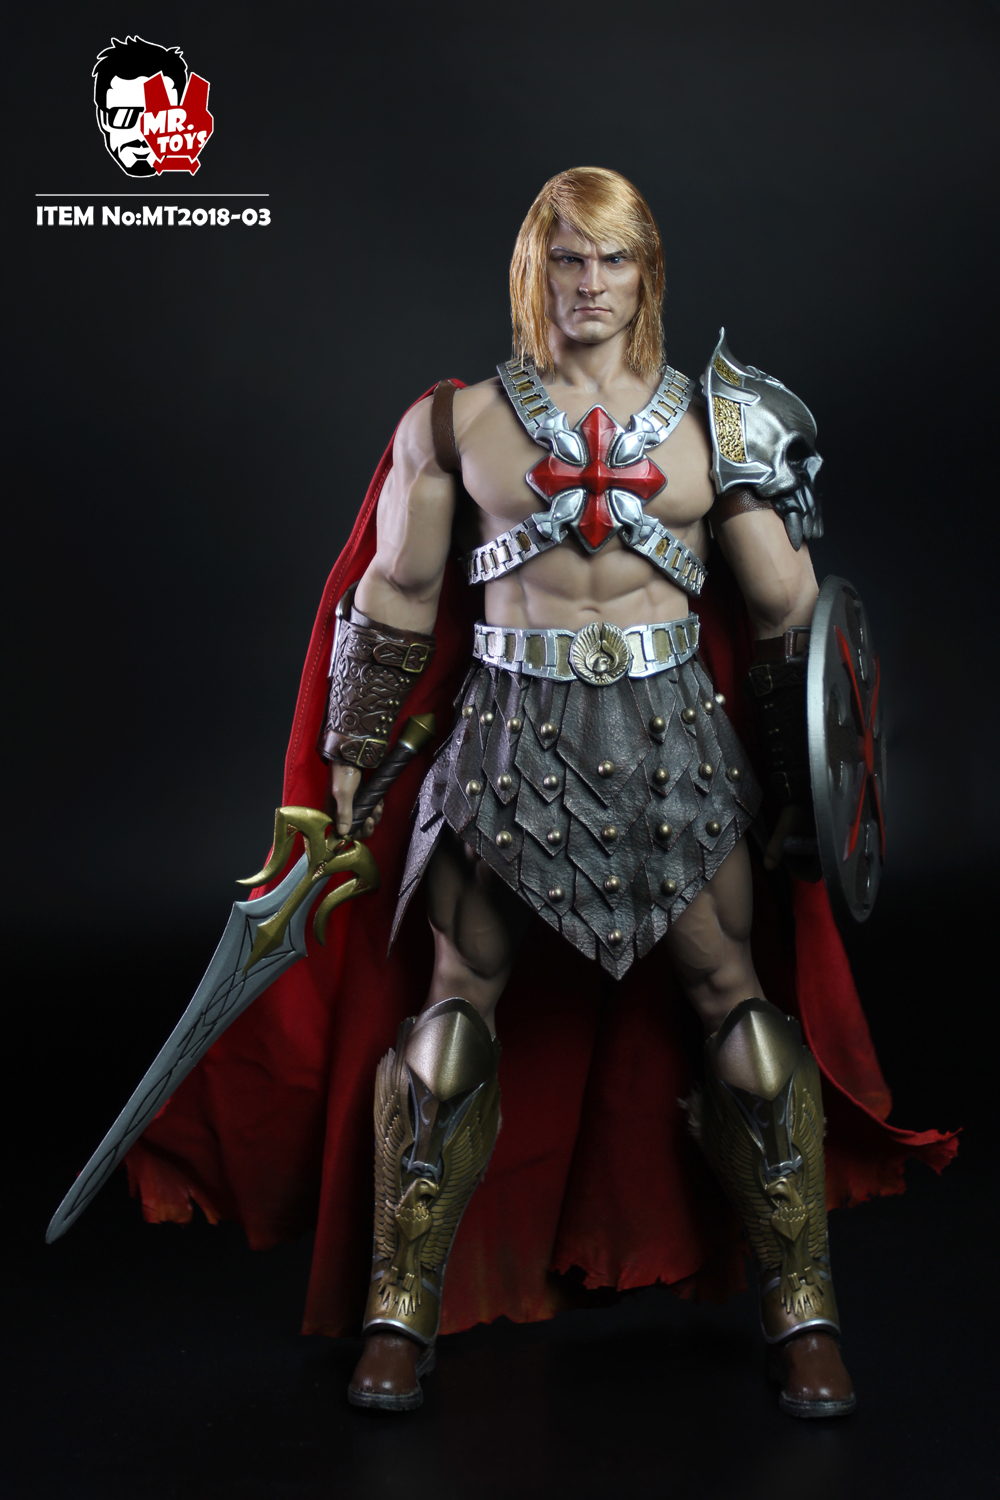 NEW PRODUCT: Mr. Toys MT2018-03 1/6 He-Man head carving costume set O1cn0130